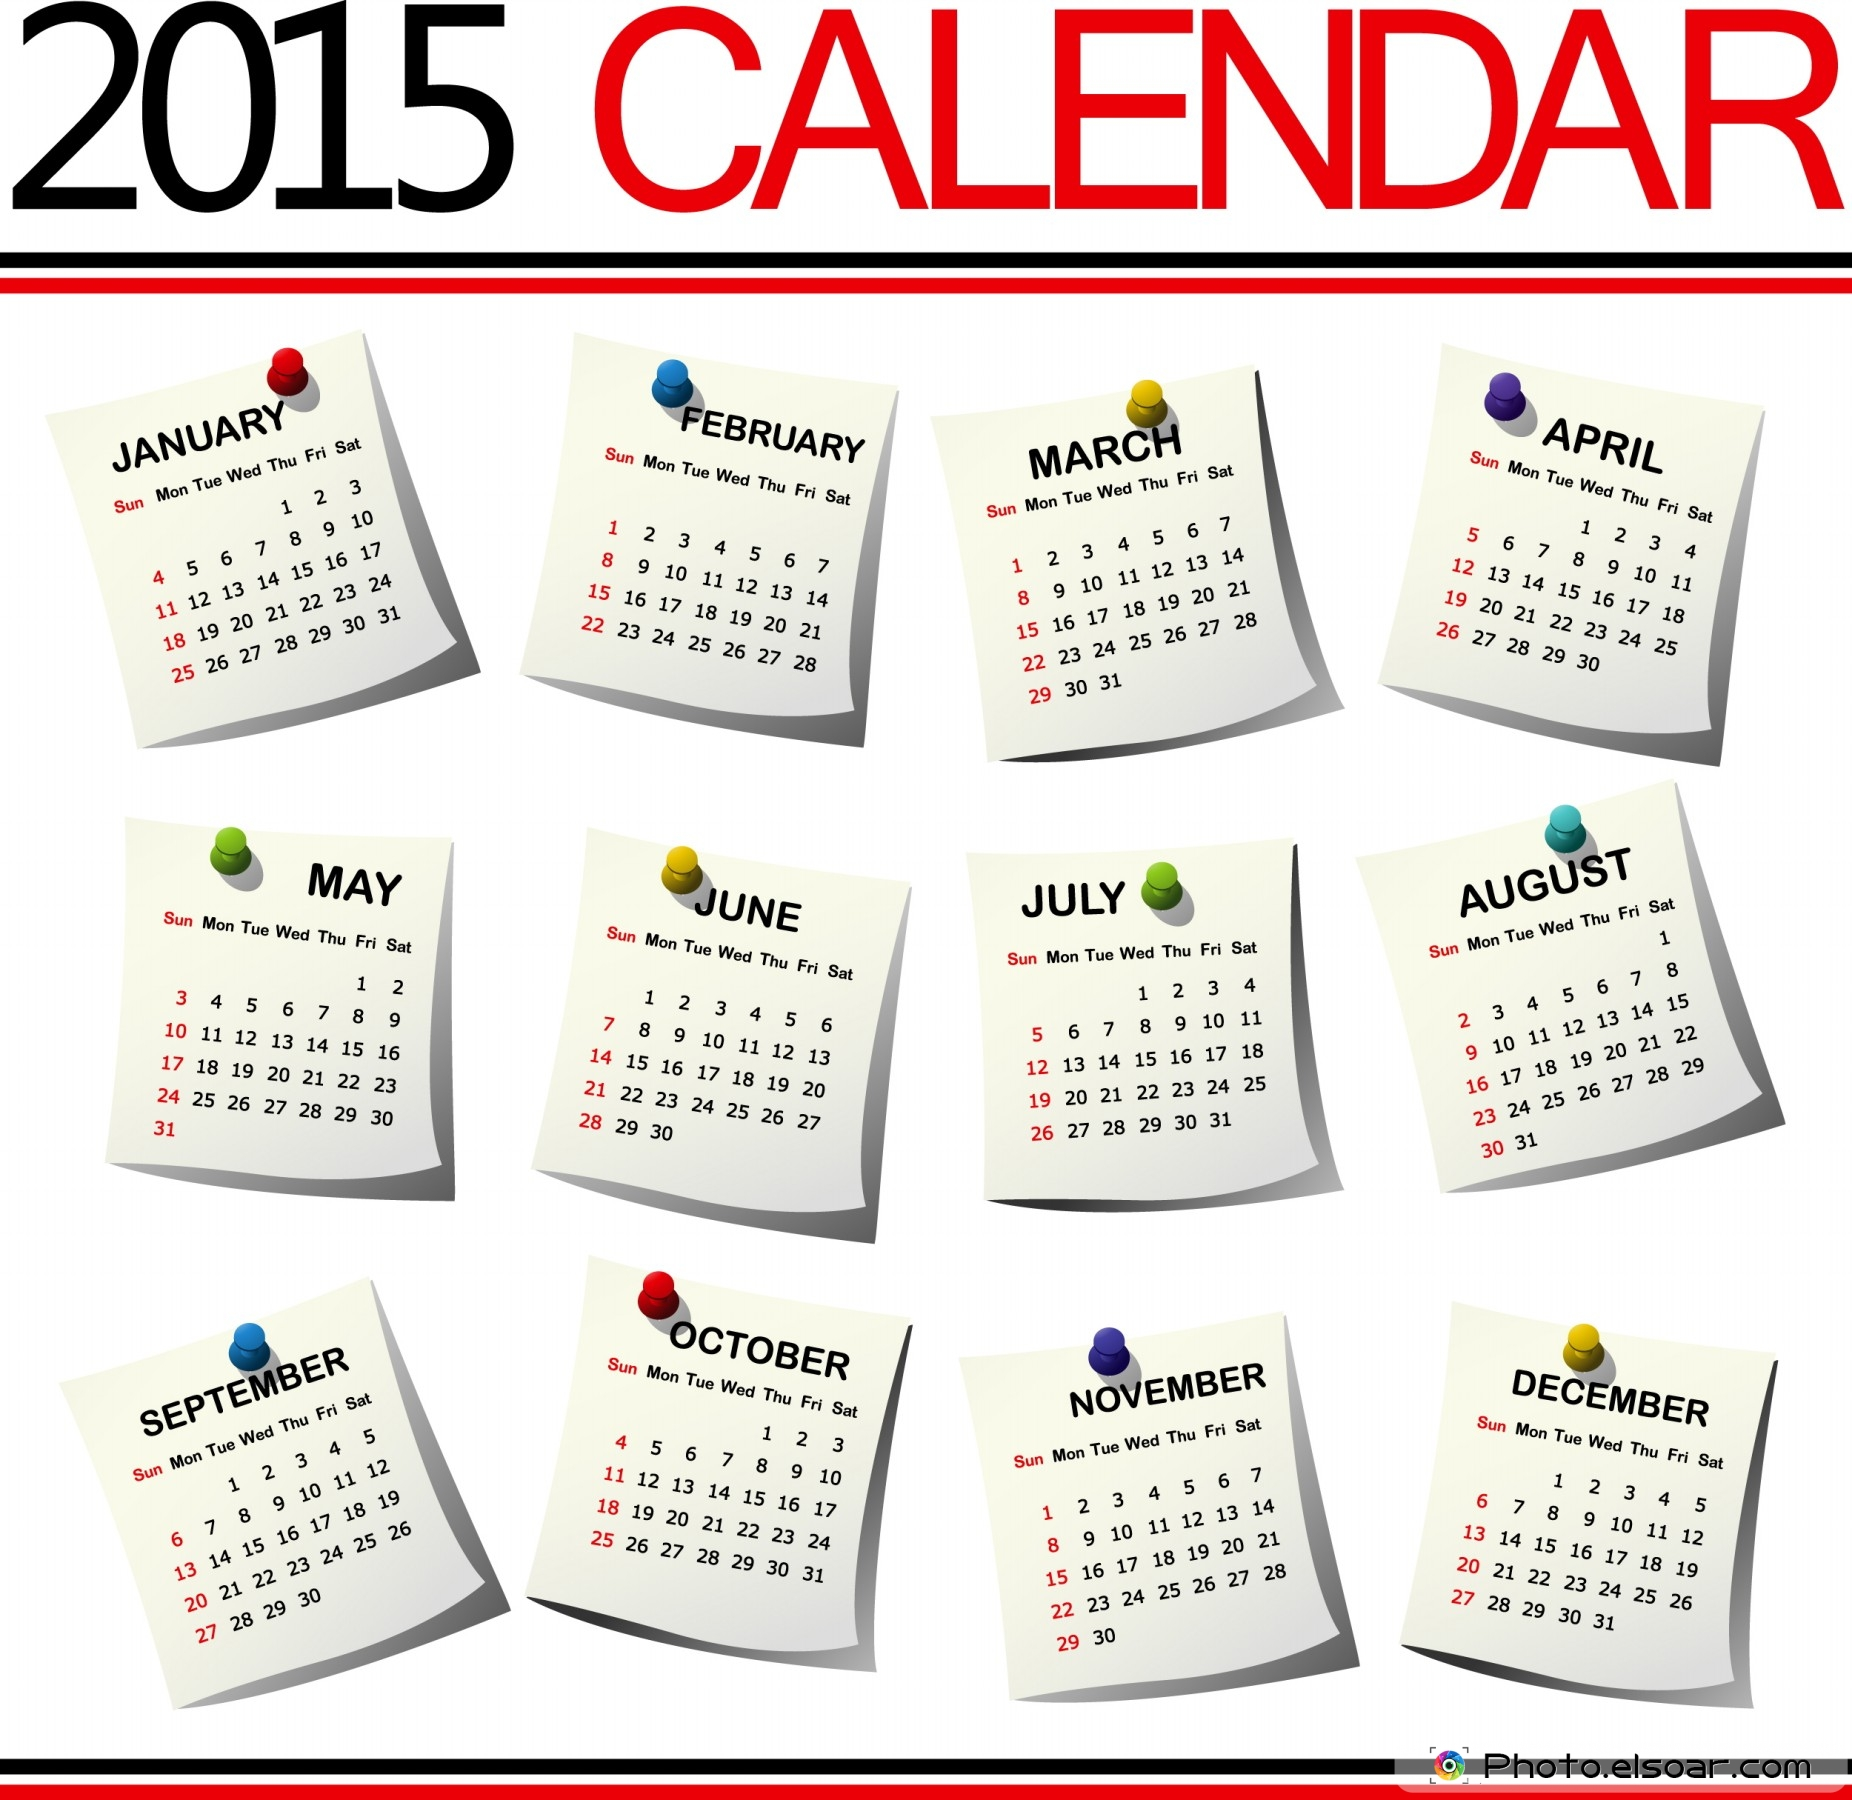 100% Off All 2015 Calendars Designs For Different Trends • Elsoar